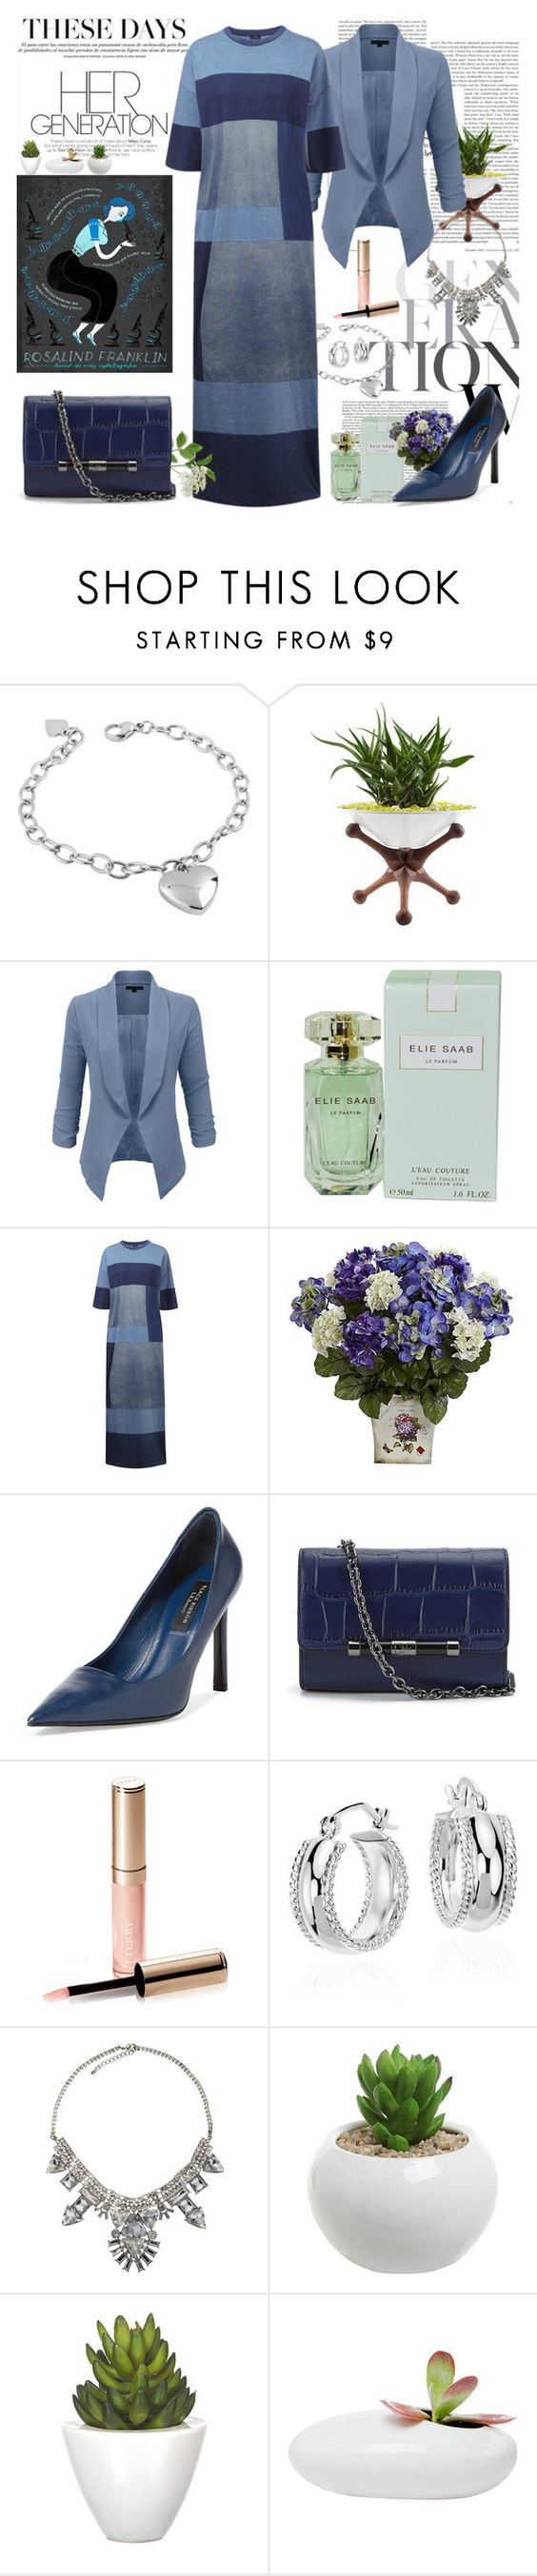 """Last 3 Sets!"" by nefertiti1373 ❤ liked on Polyvore featuring West Coast Jewelry, Steel Life, LE3NO, Elie Saab, Joseph, Nearly Natural, L.K.Bennett, Diane Von Furstenberg, By Terry and Blue Nile"